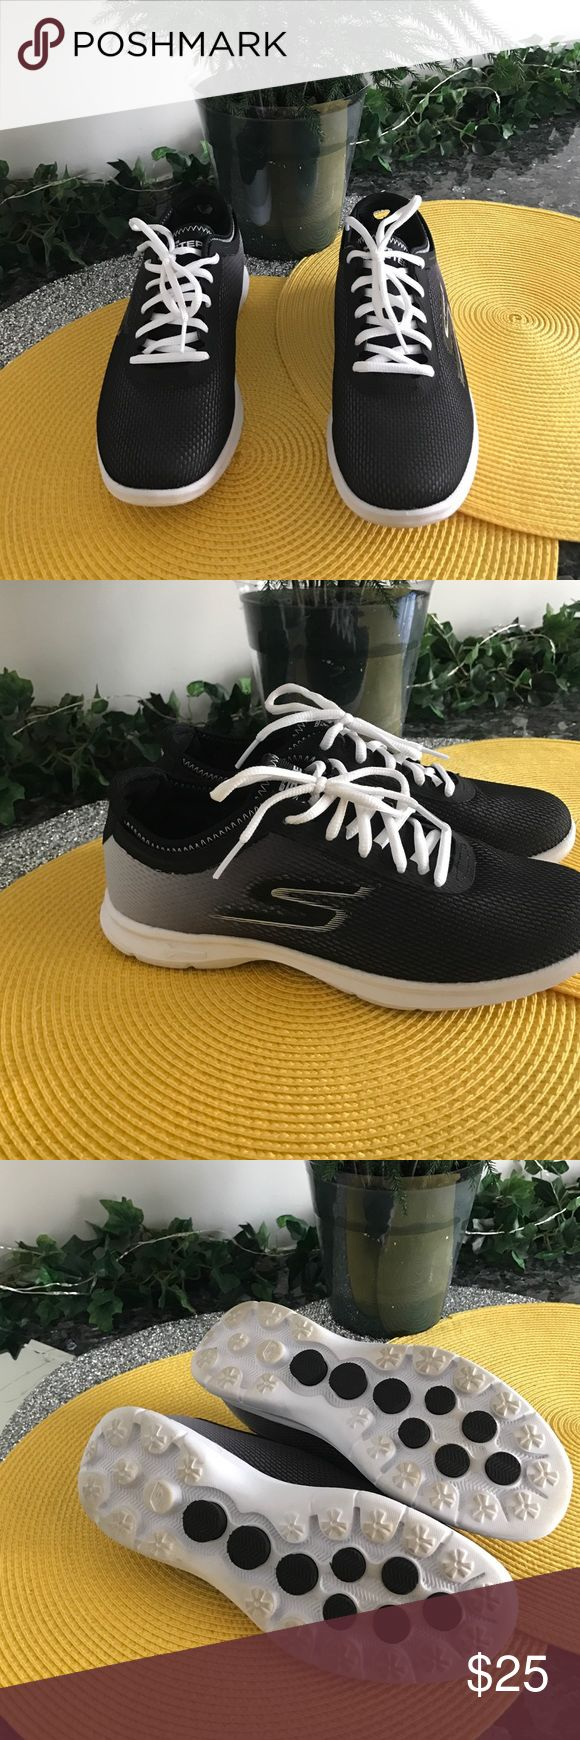 Skechers black shoes  with white trim Black Skechers shoes with white trim extra black laces.  Very comfortable.  In good condition. Worn about 3 times Skechers Shoes